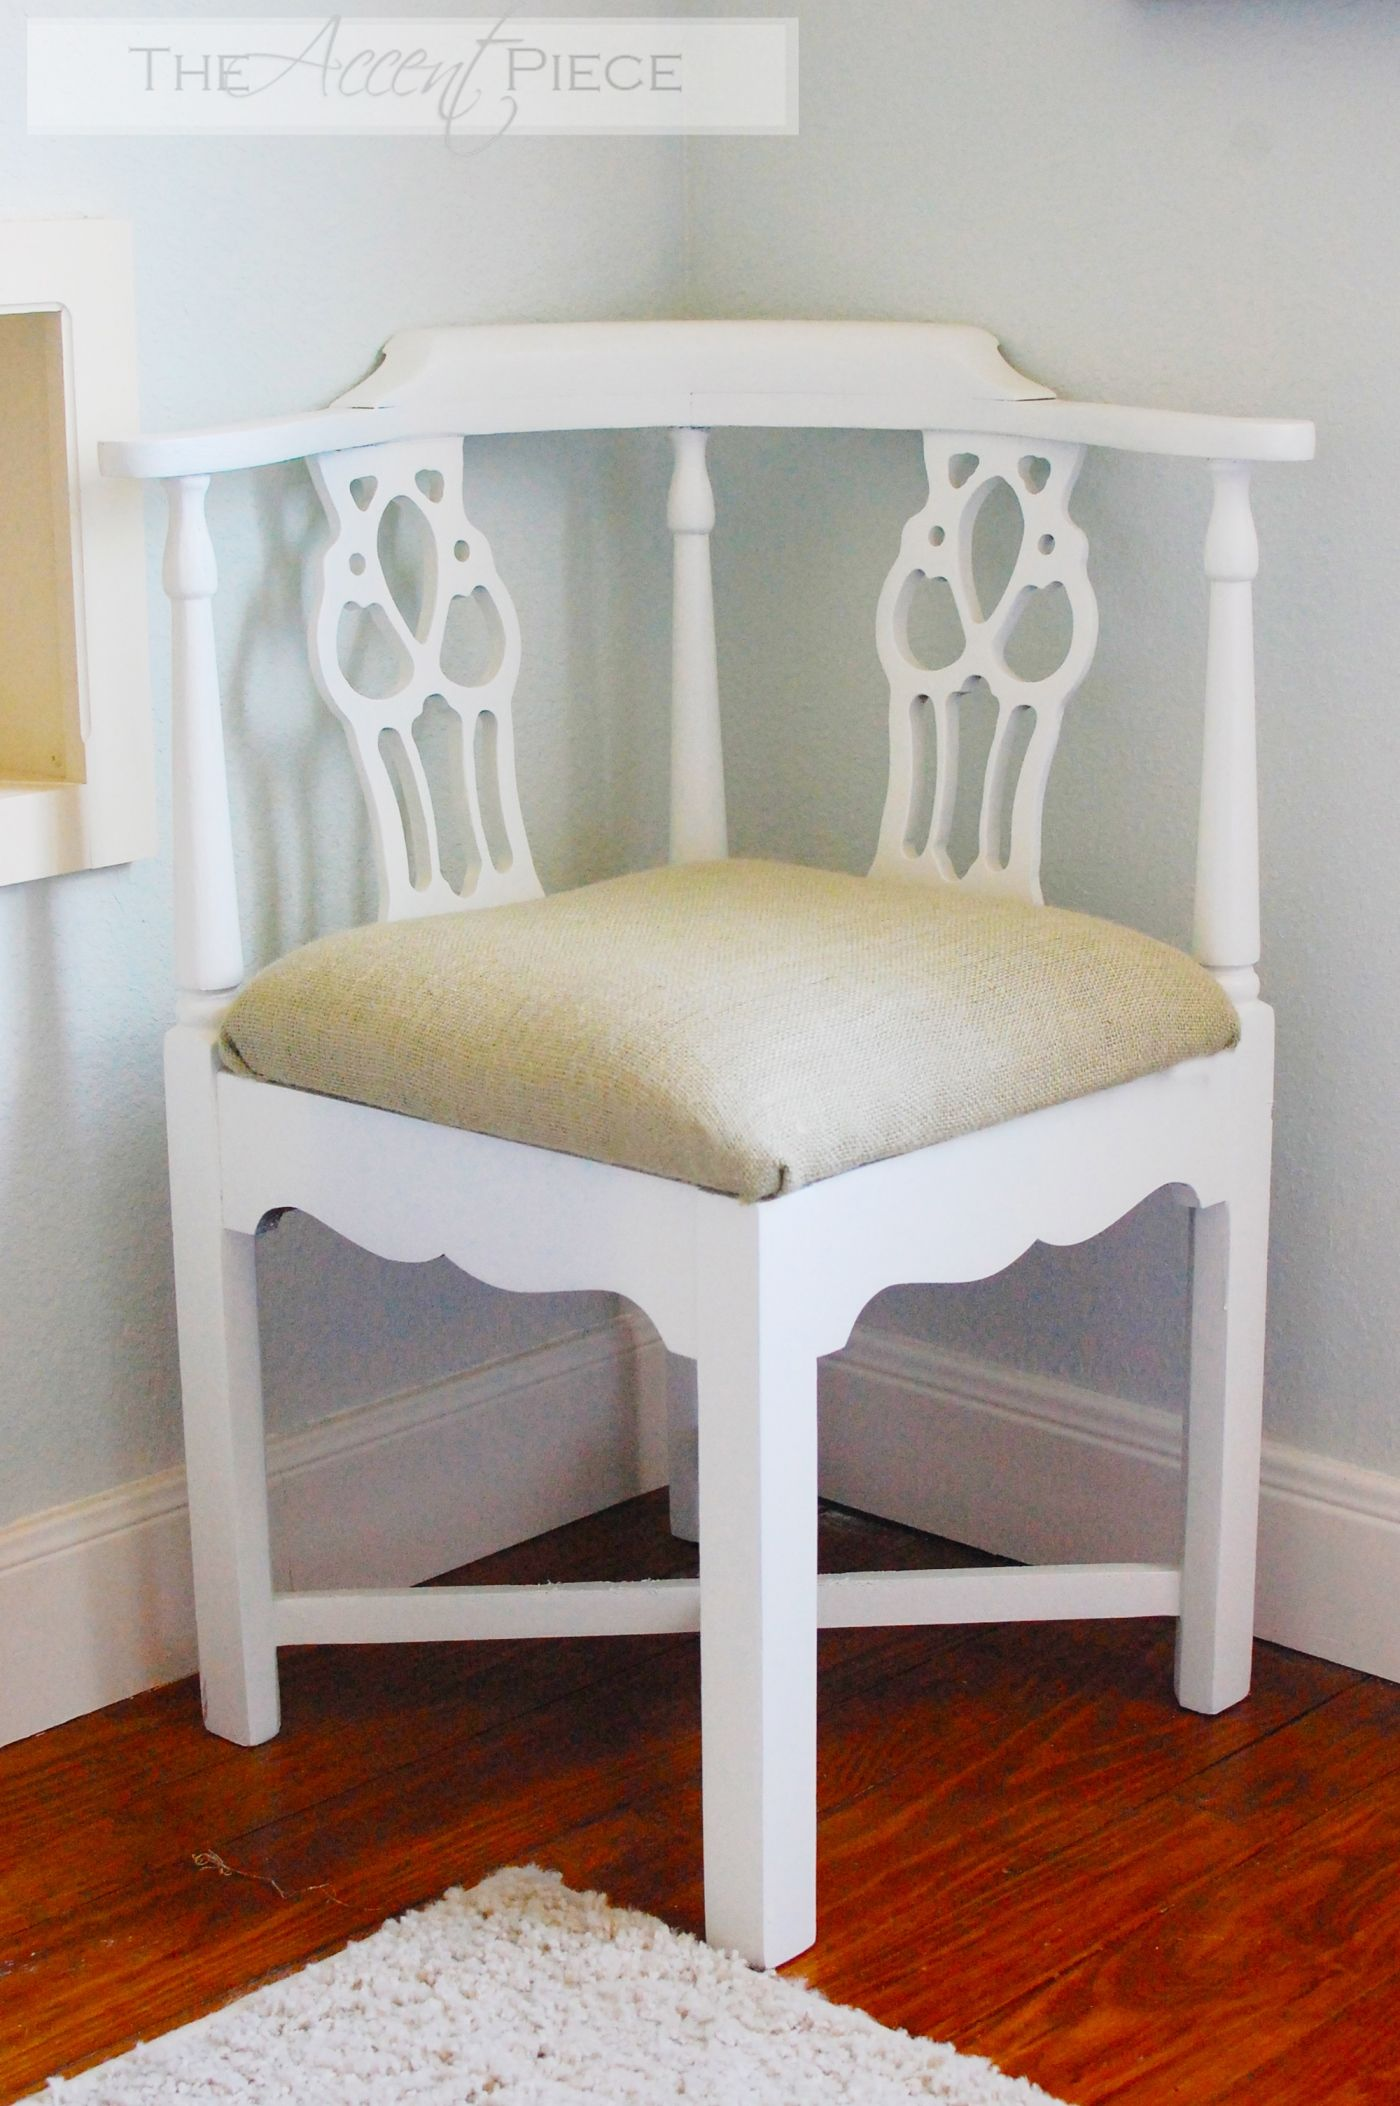 Antique White Painted Wooden Corner Chair Design Feature Backrest In Carved  And Also Brown Cushion Seat Plus White Wooden Cross Footrest Chair